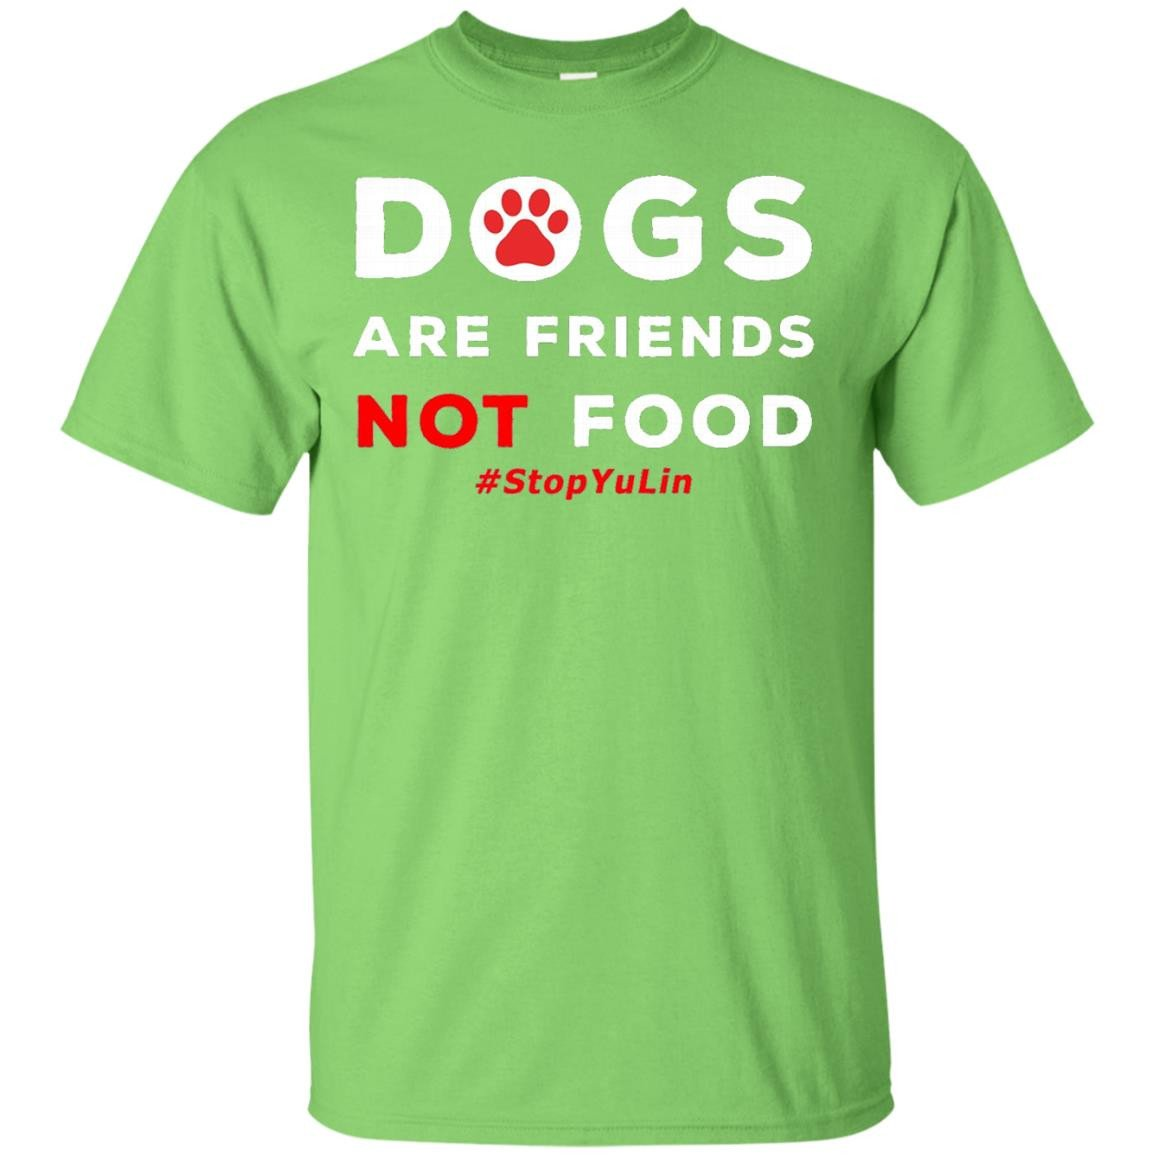 Yulin Dog Dog Are Friends Not Food, Stop YuLin T-shirt - T-Shirt